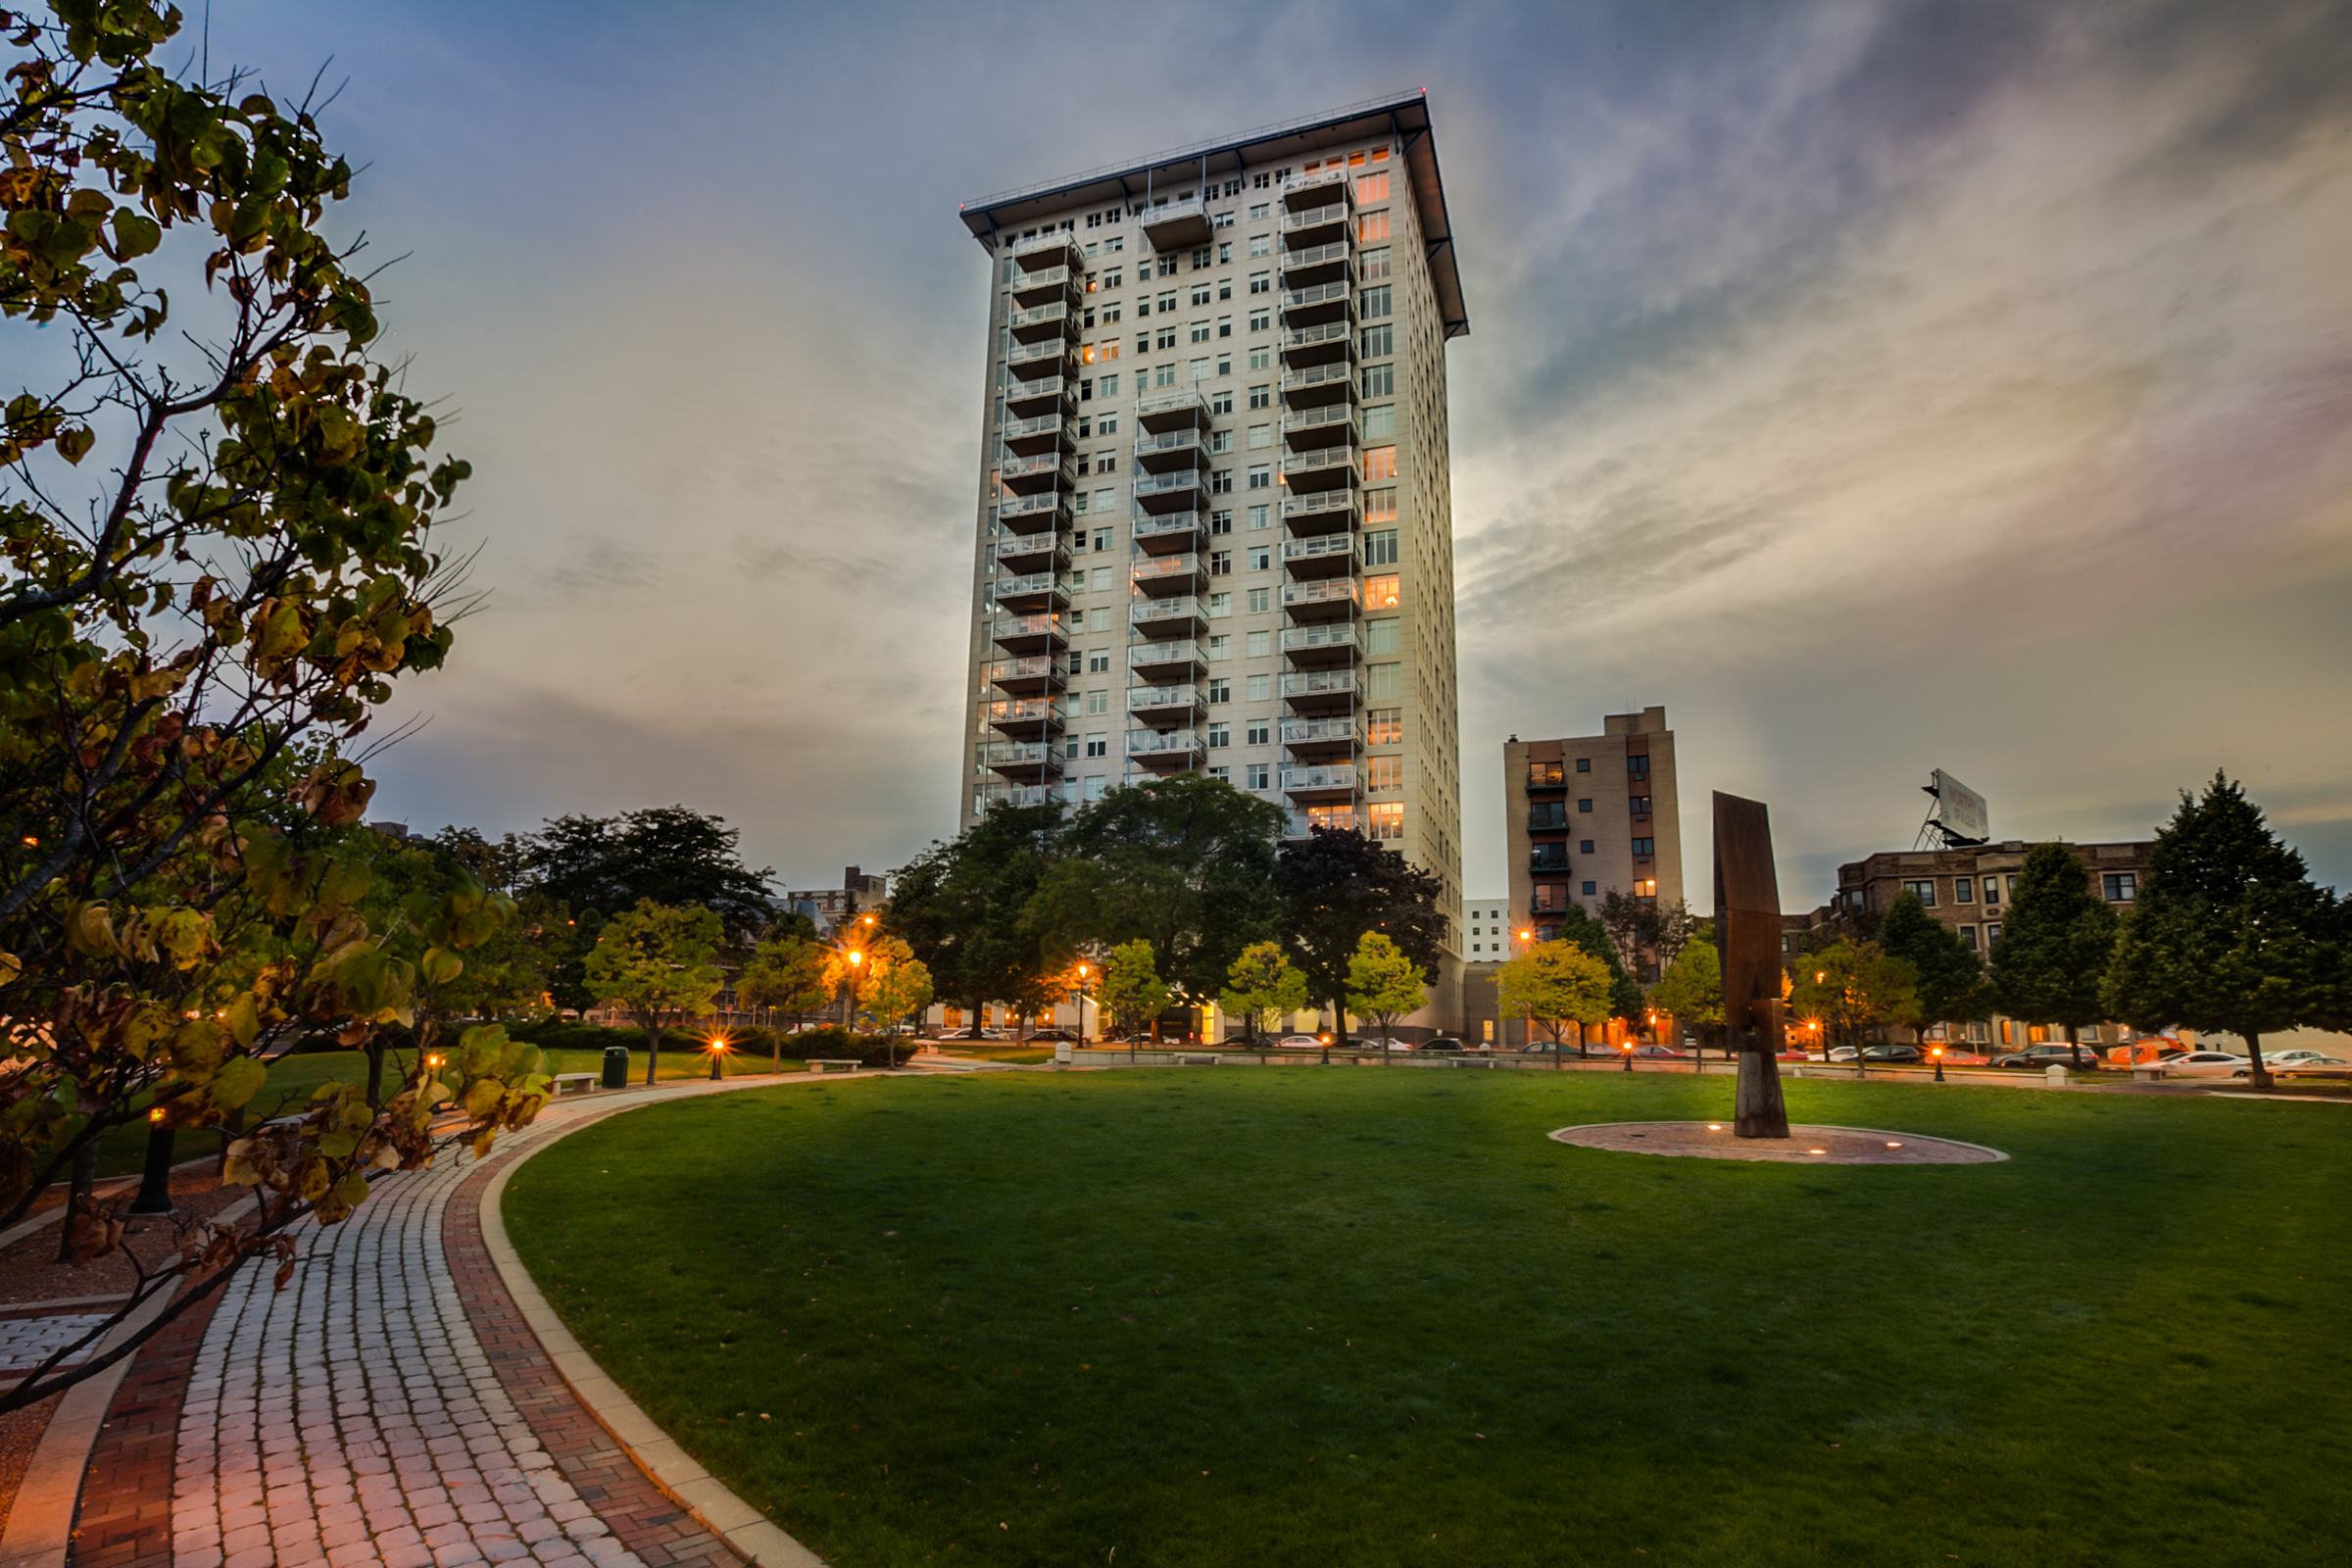 Breakwater Condominiums, 1313 N. Franklin Pl. Photo courtesy of Corley Real Estate.